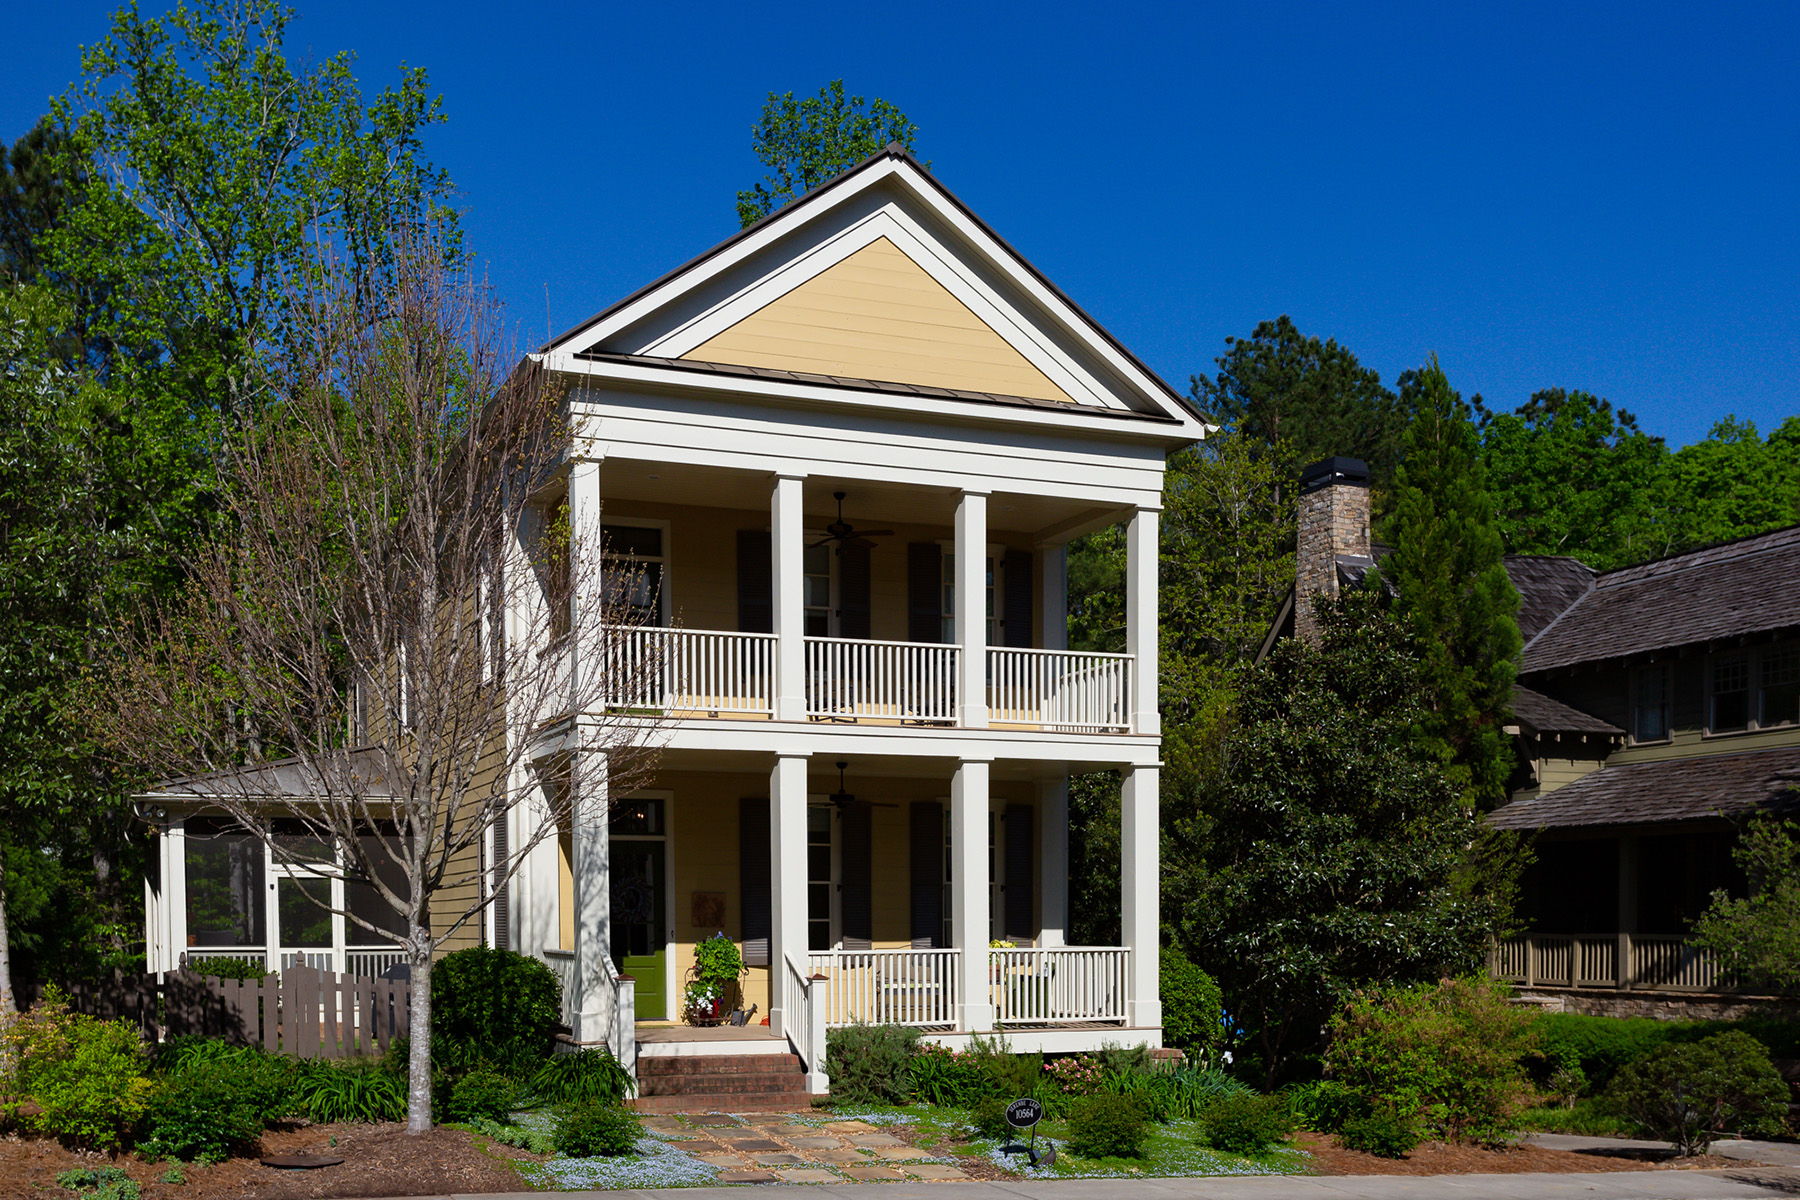 Single Family Homes for Sale at Charleston-Style Home In Award-Winning Serenbe Community 10564 Serenbe Lane Chattahoochee Hills, Georgia 30268 United States